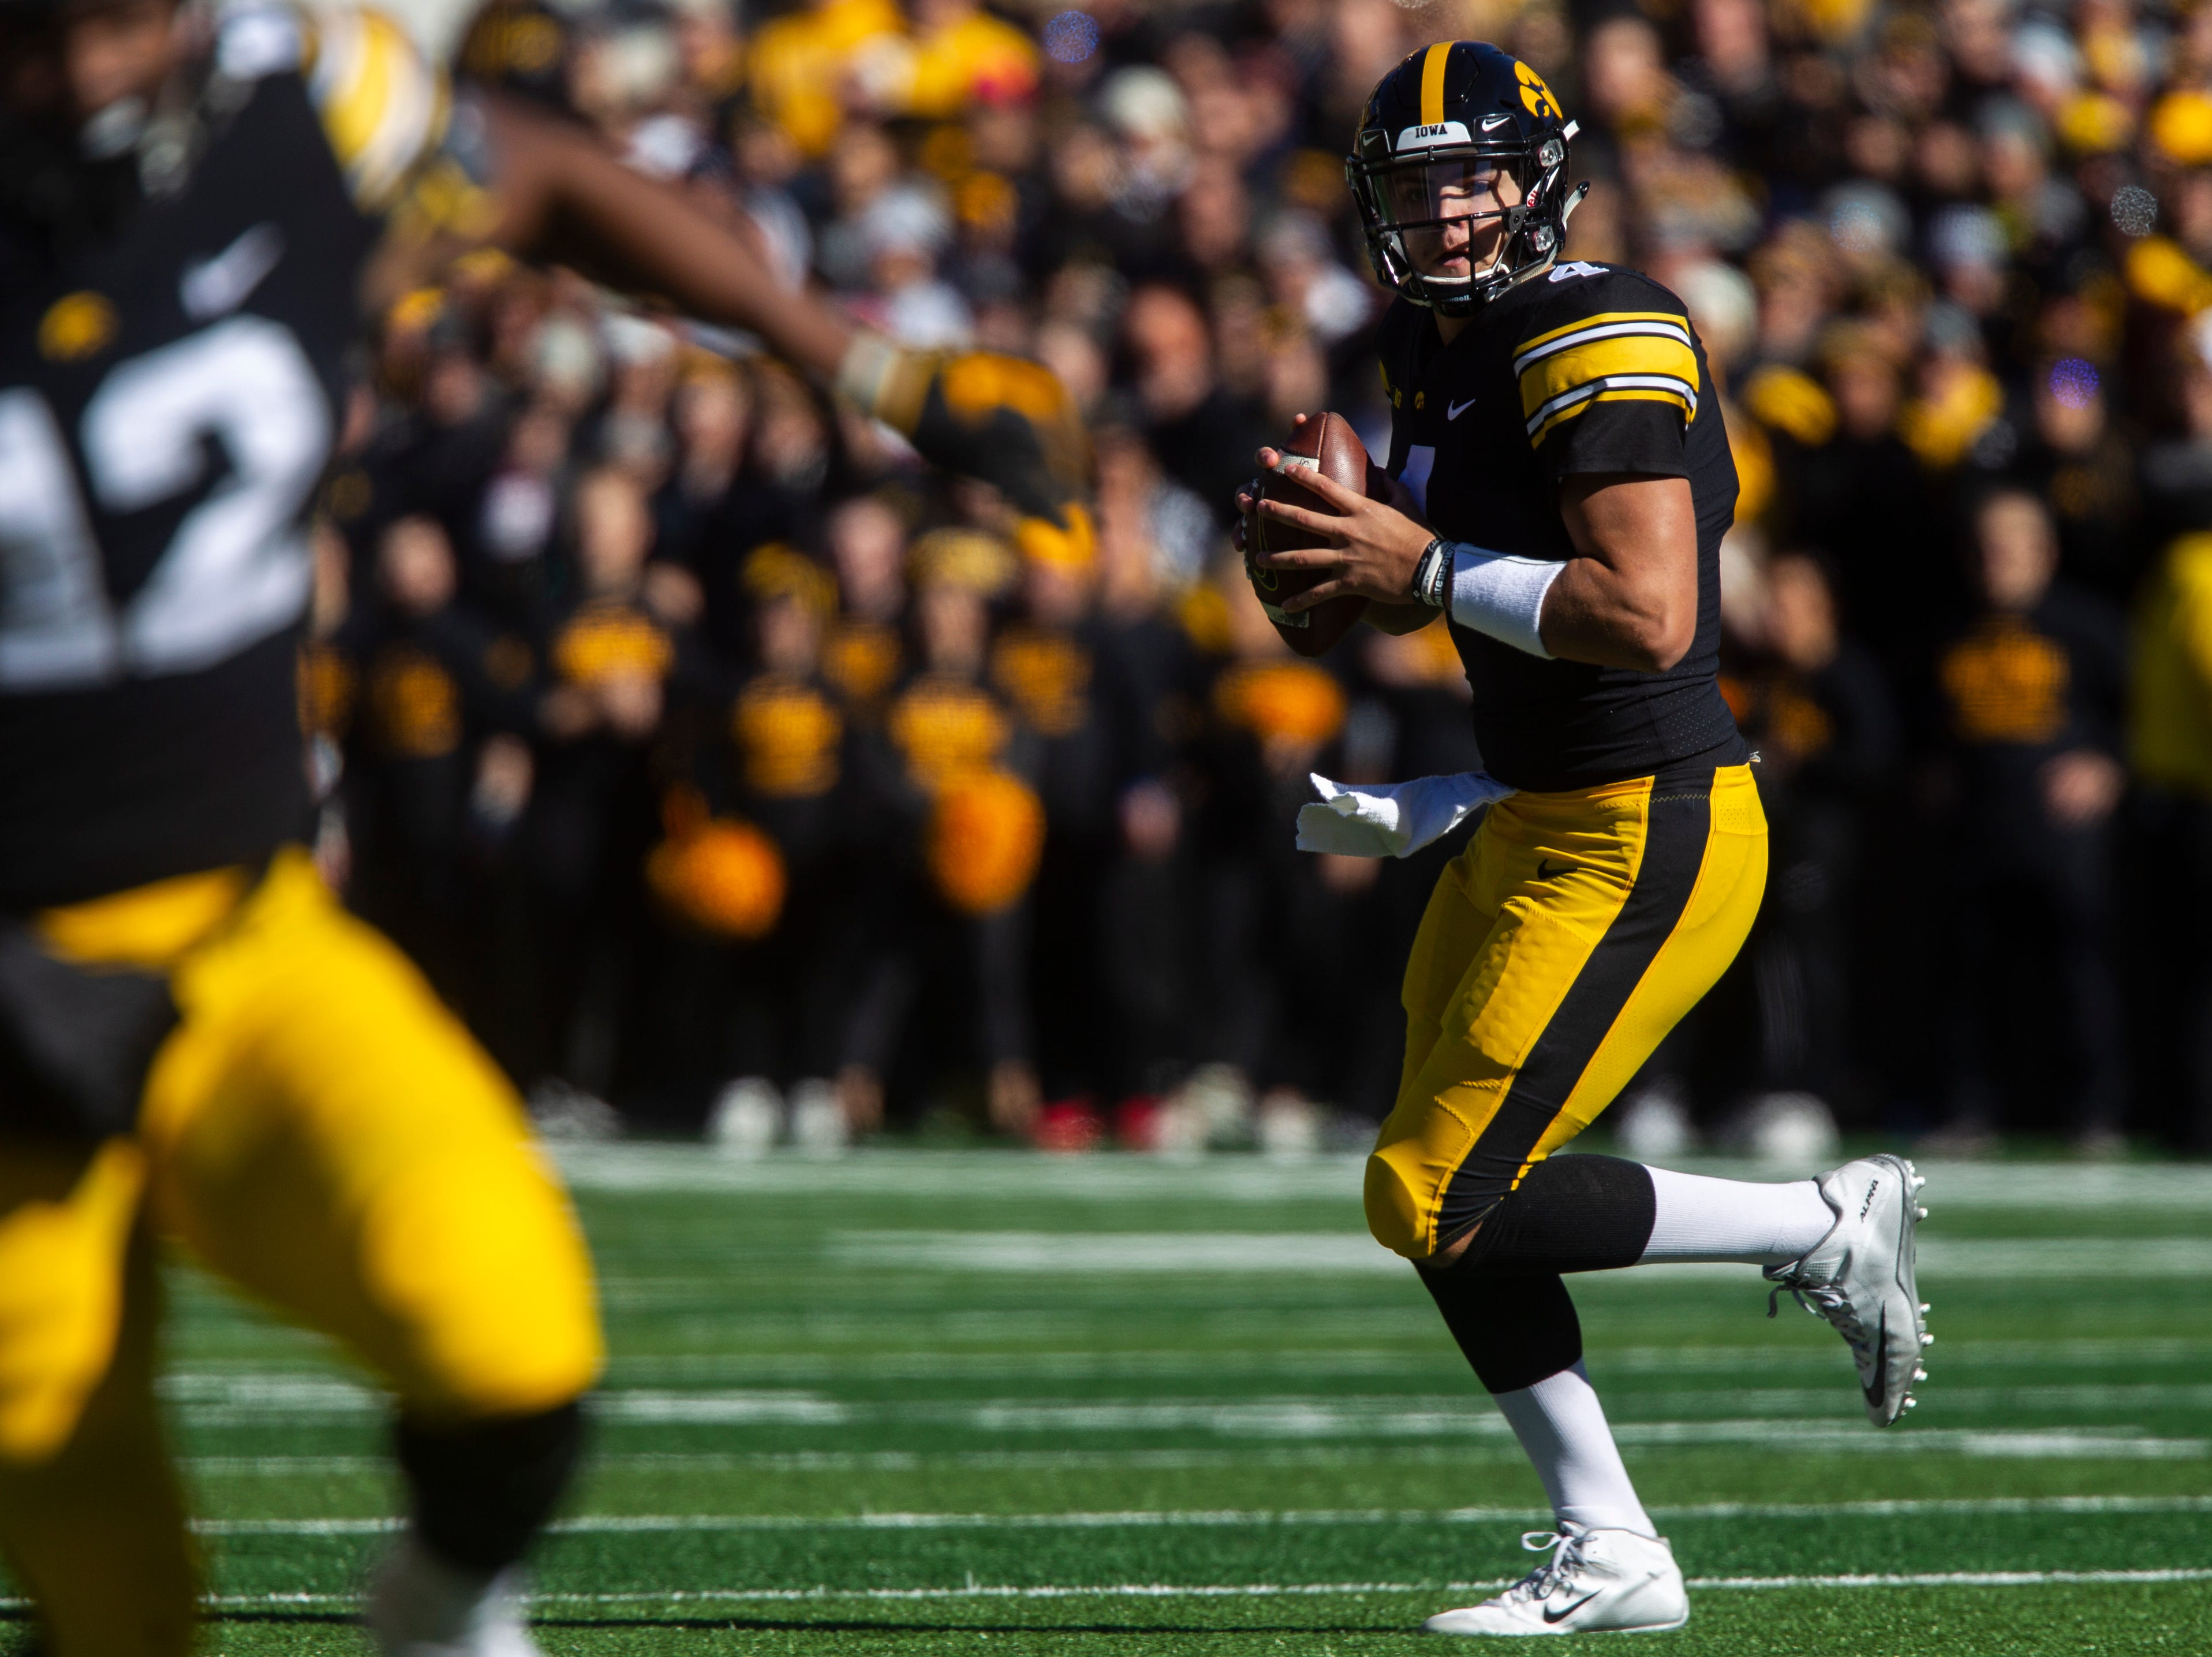 Iowa quarterback Nate Stanley (4) rolls out to pass during an NCAA Big Ten conference football game on Saturday, Oct. 20, 2018, at Kinnick Stadium in Iowa City.